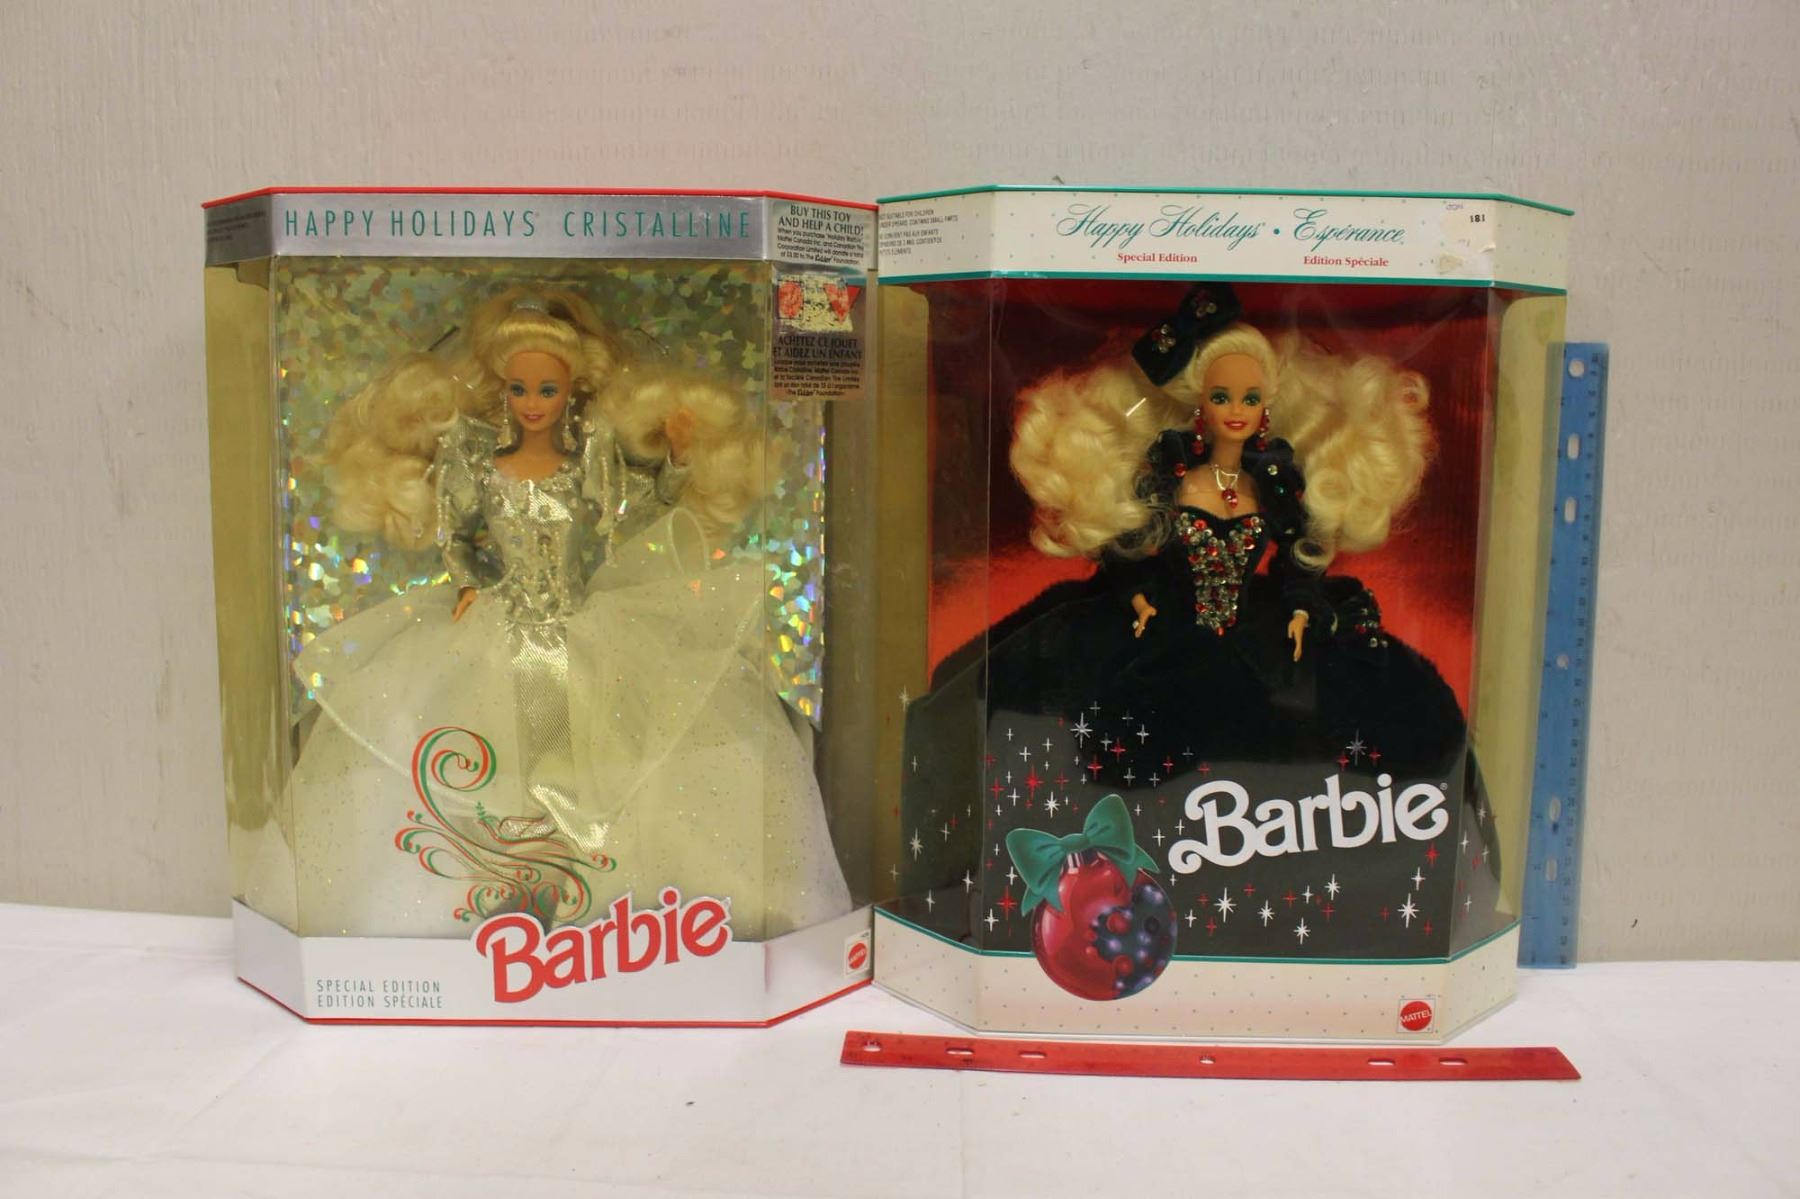 Image 1 Happy Holiday Special Edition Barbie Dolls 219911992